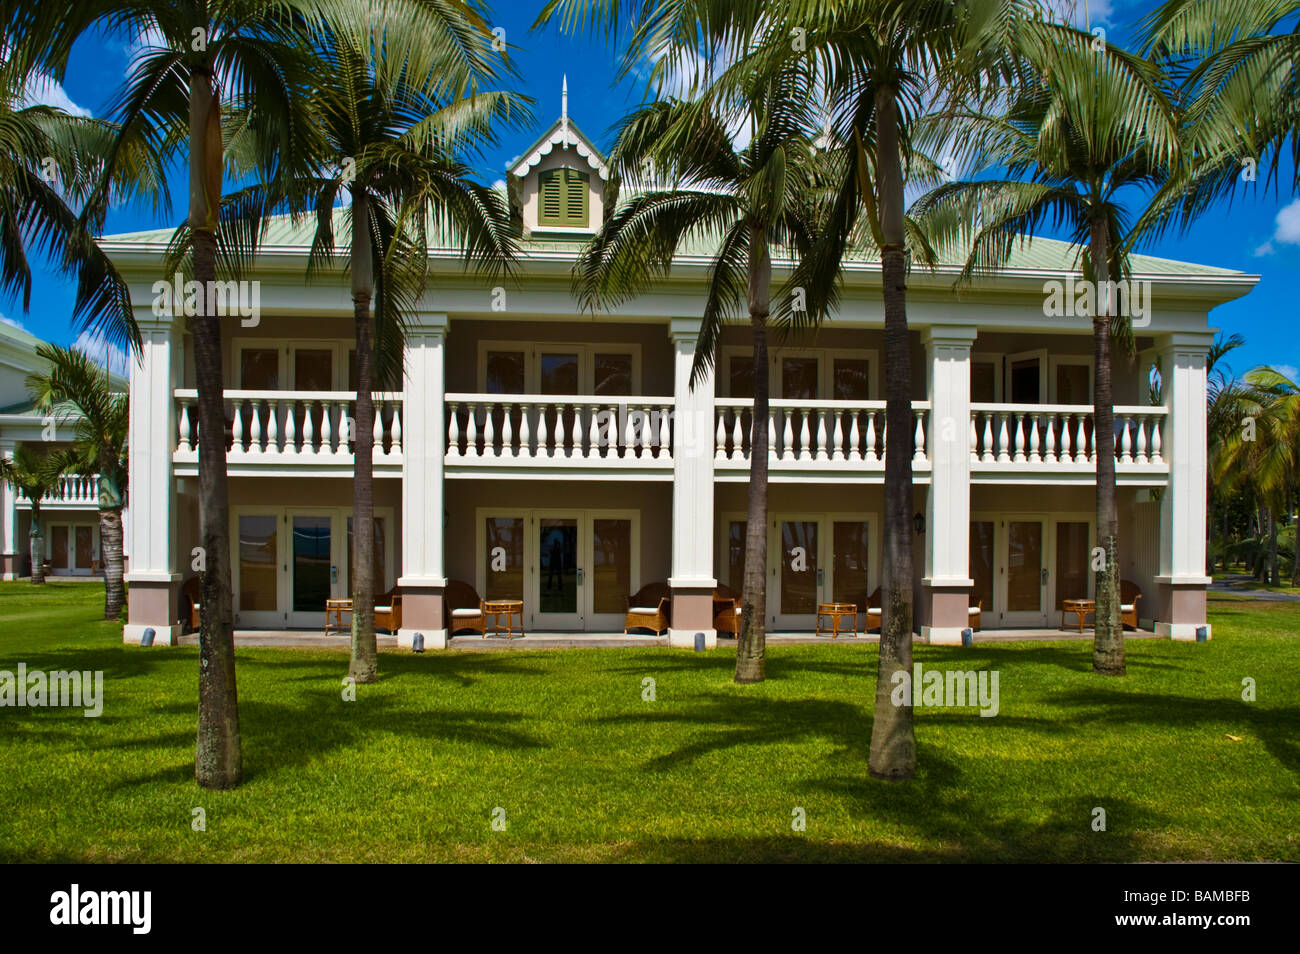 Colonial style house at sugar beach resort spa accommodation stock photo 23805023 alamy - Salon style colonial ...